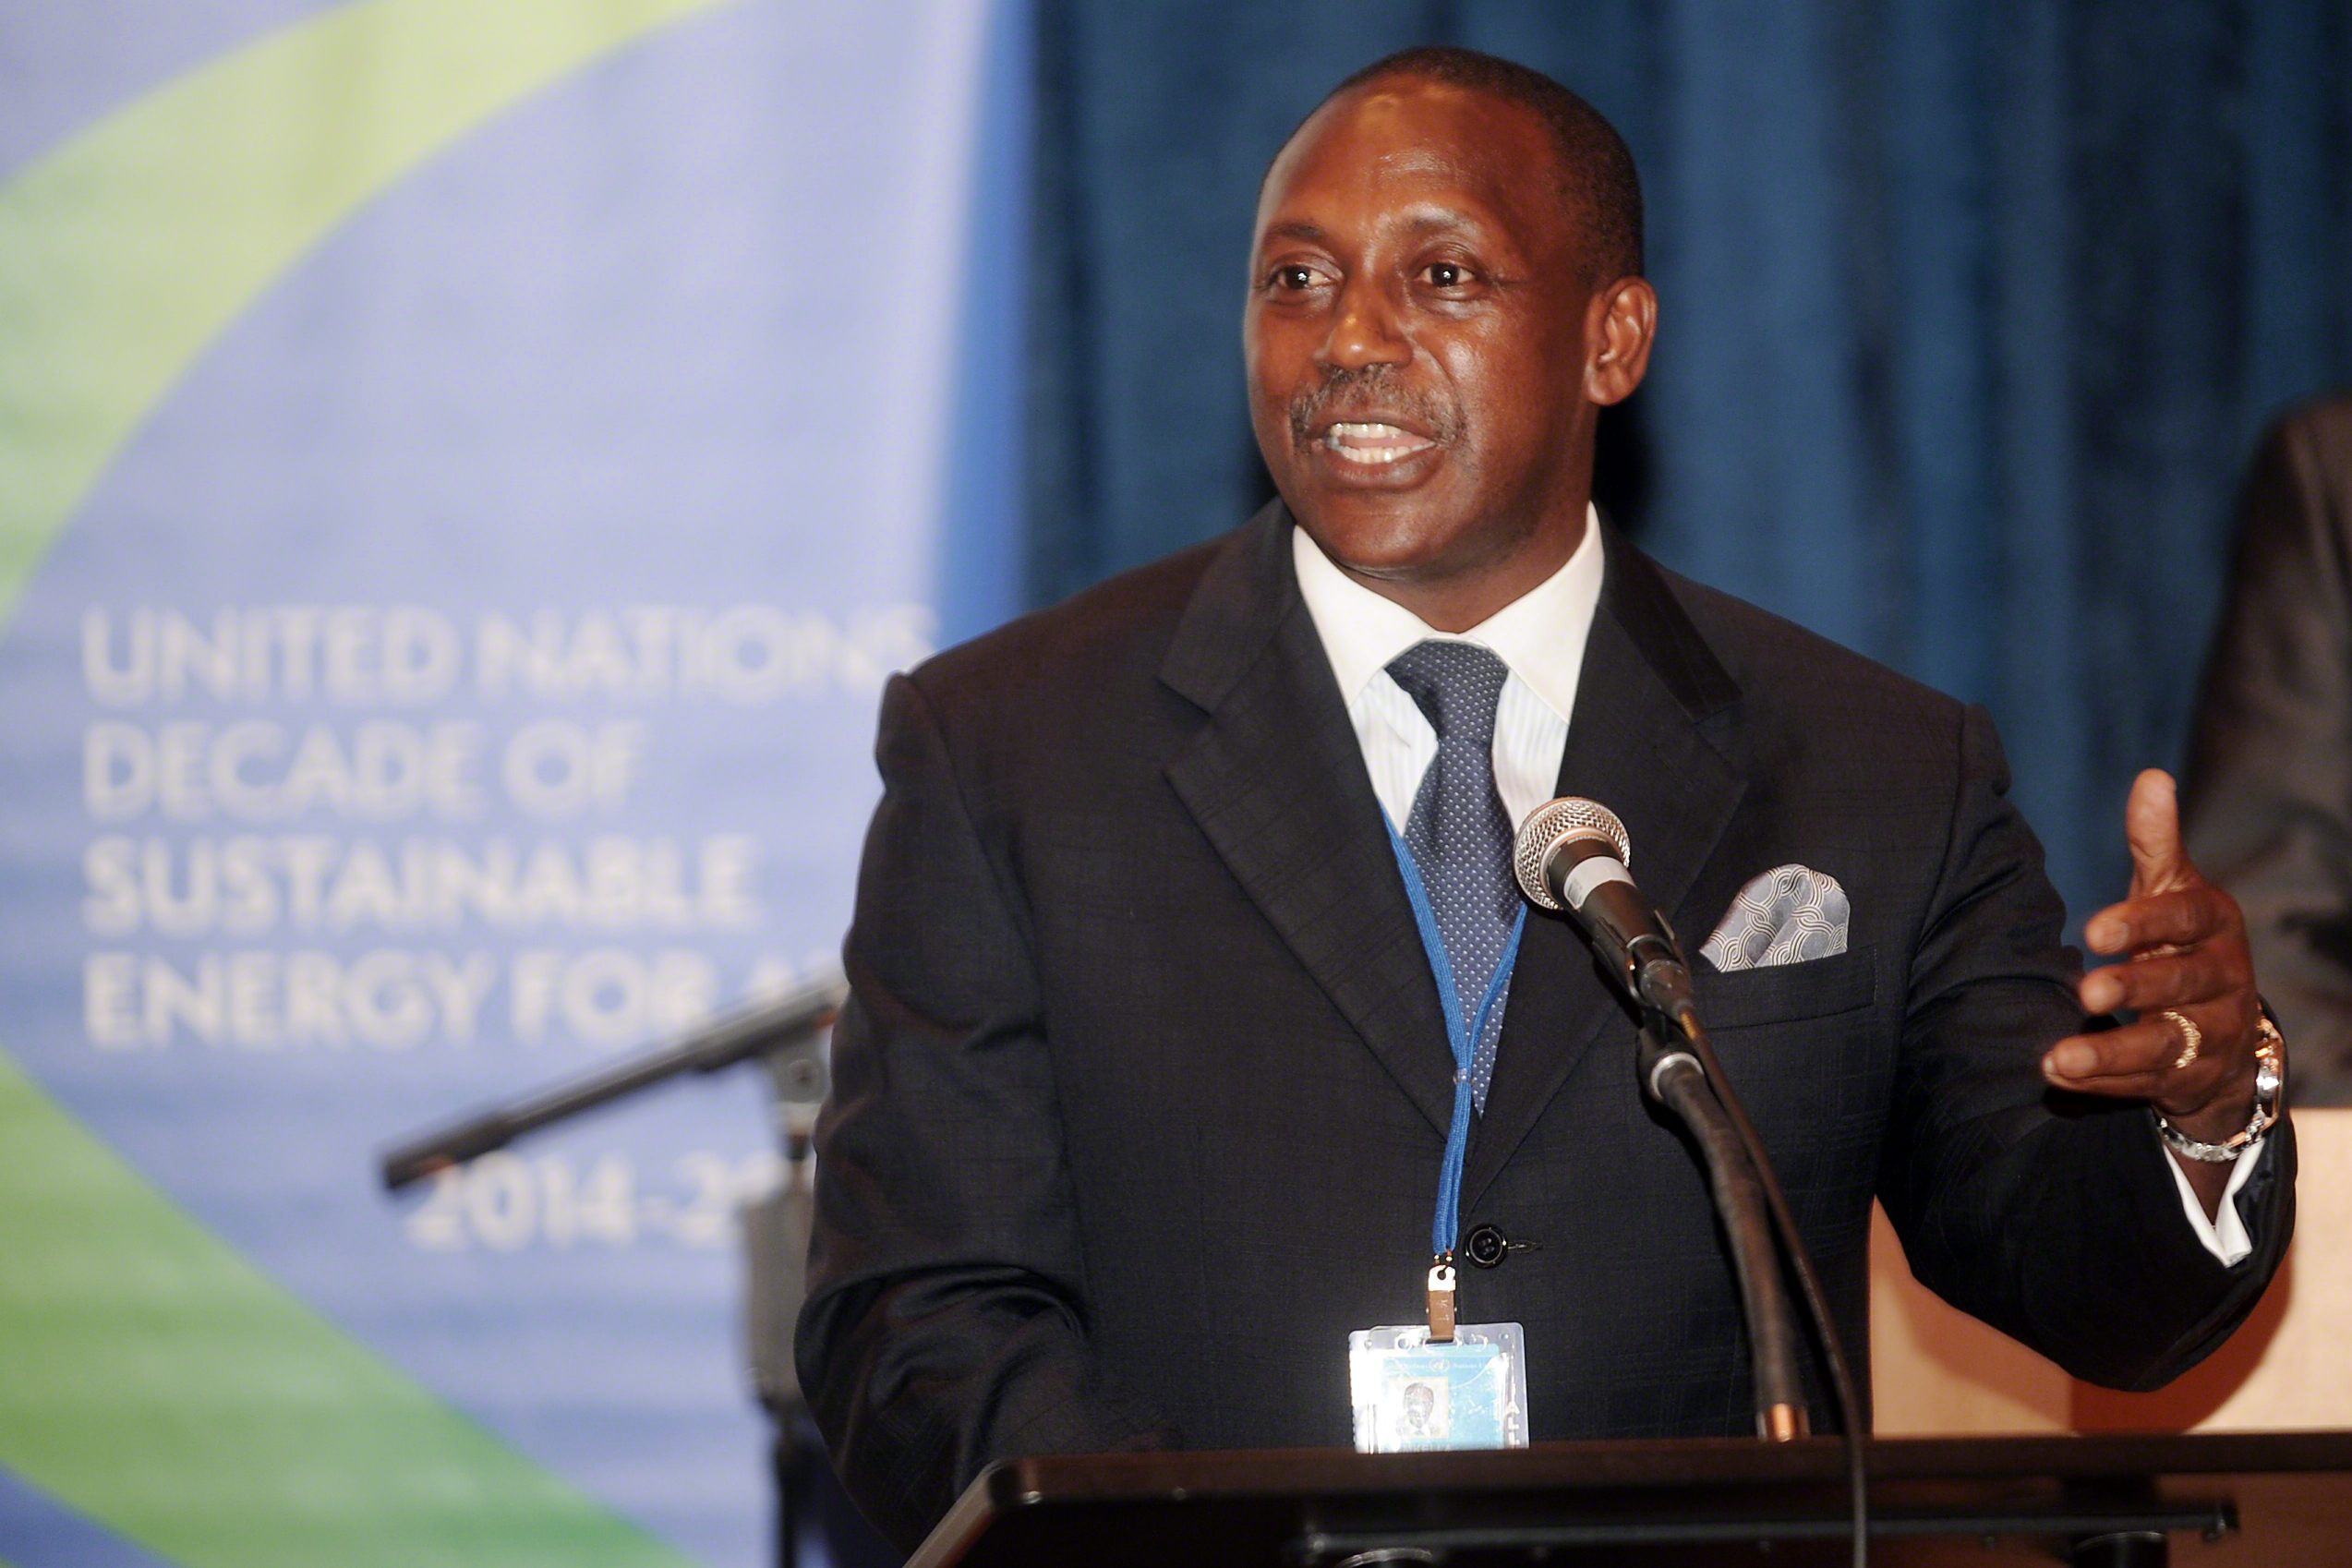 Kandeh Yumkella, Special Representative to the UN Secretary-General and CEO, SE4ALL